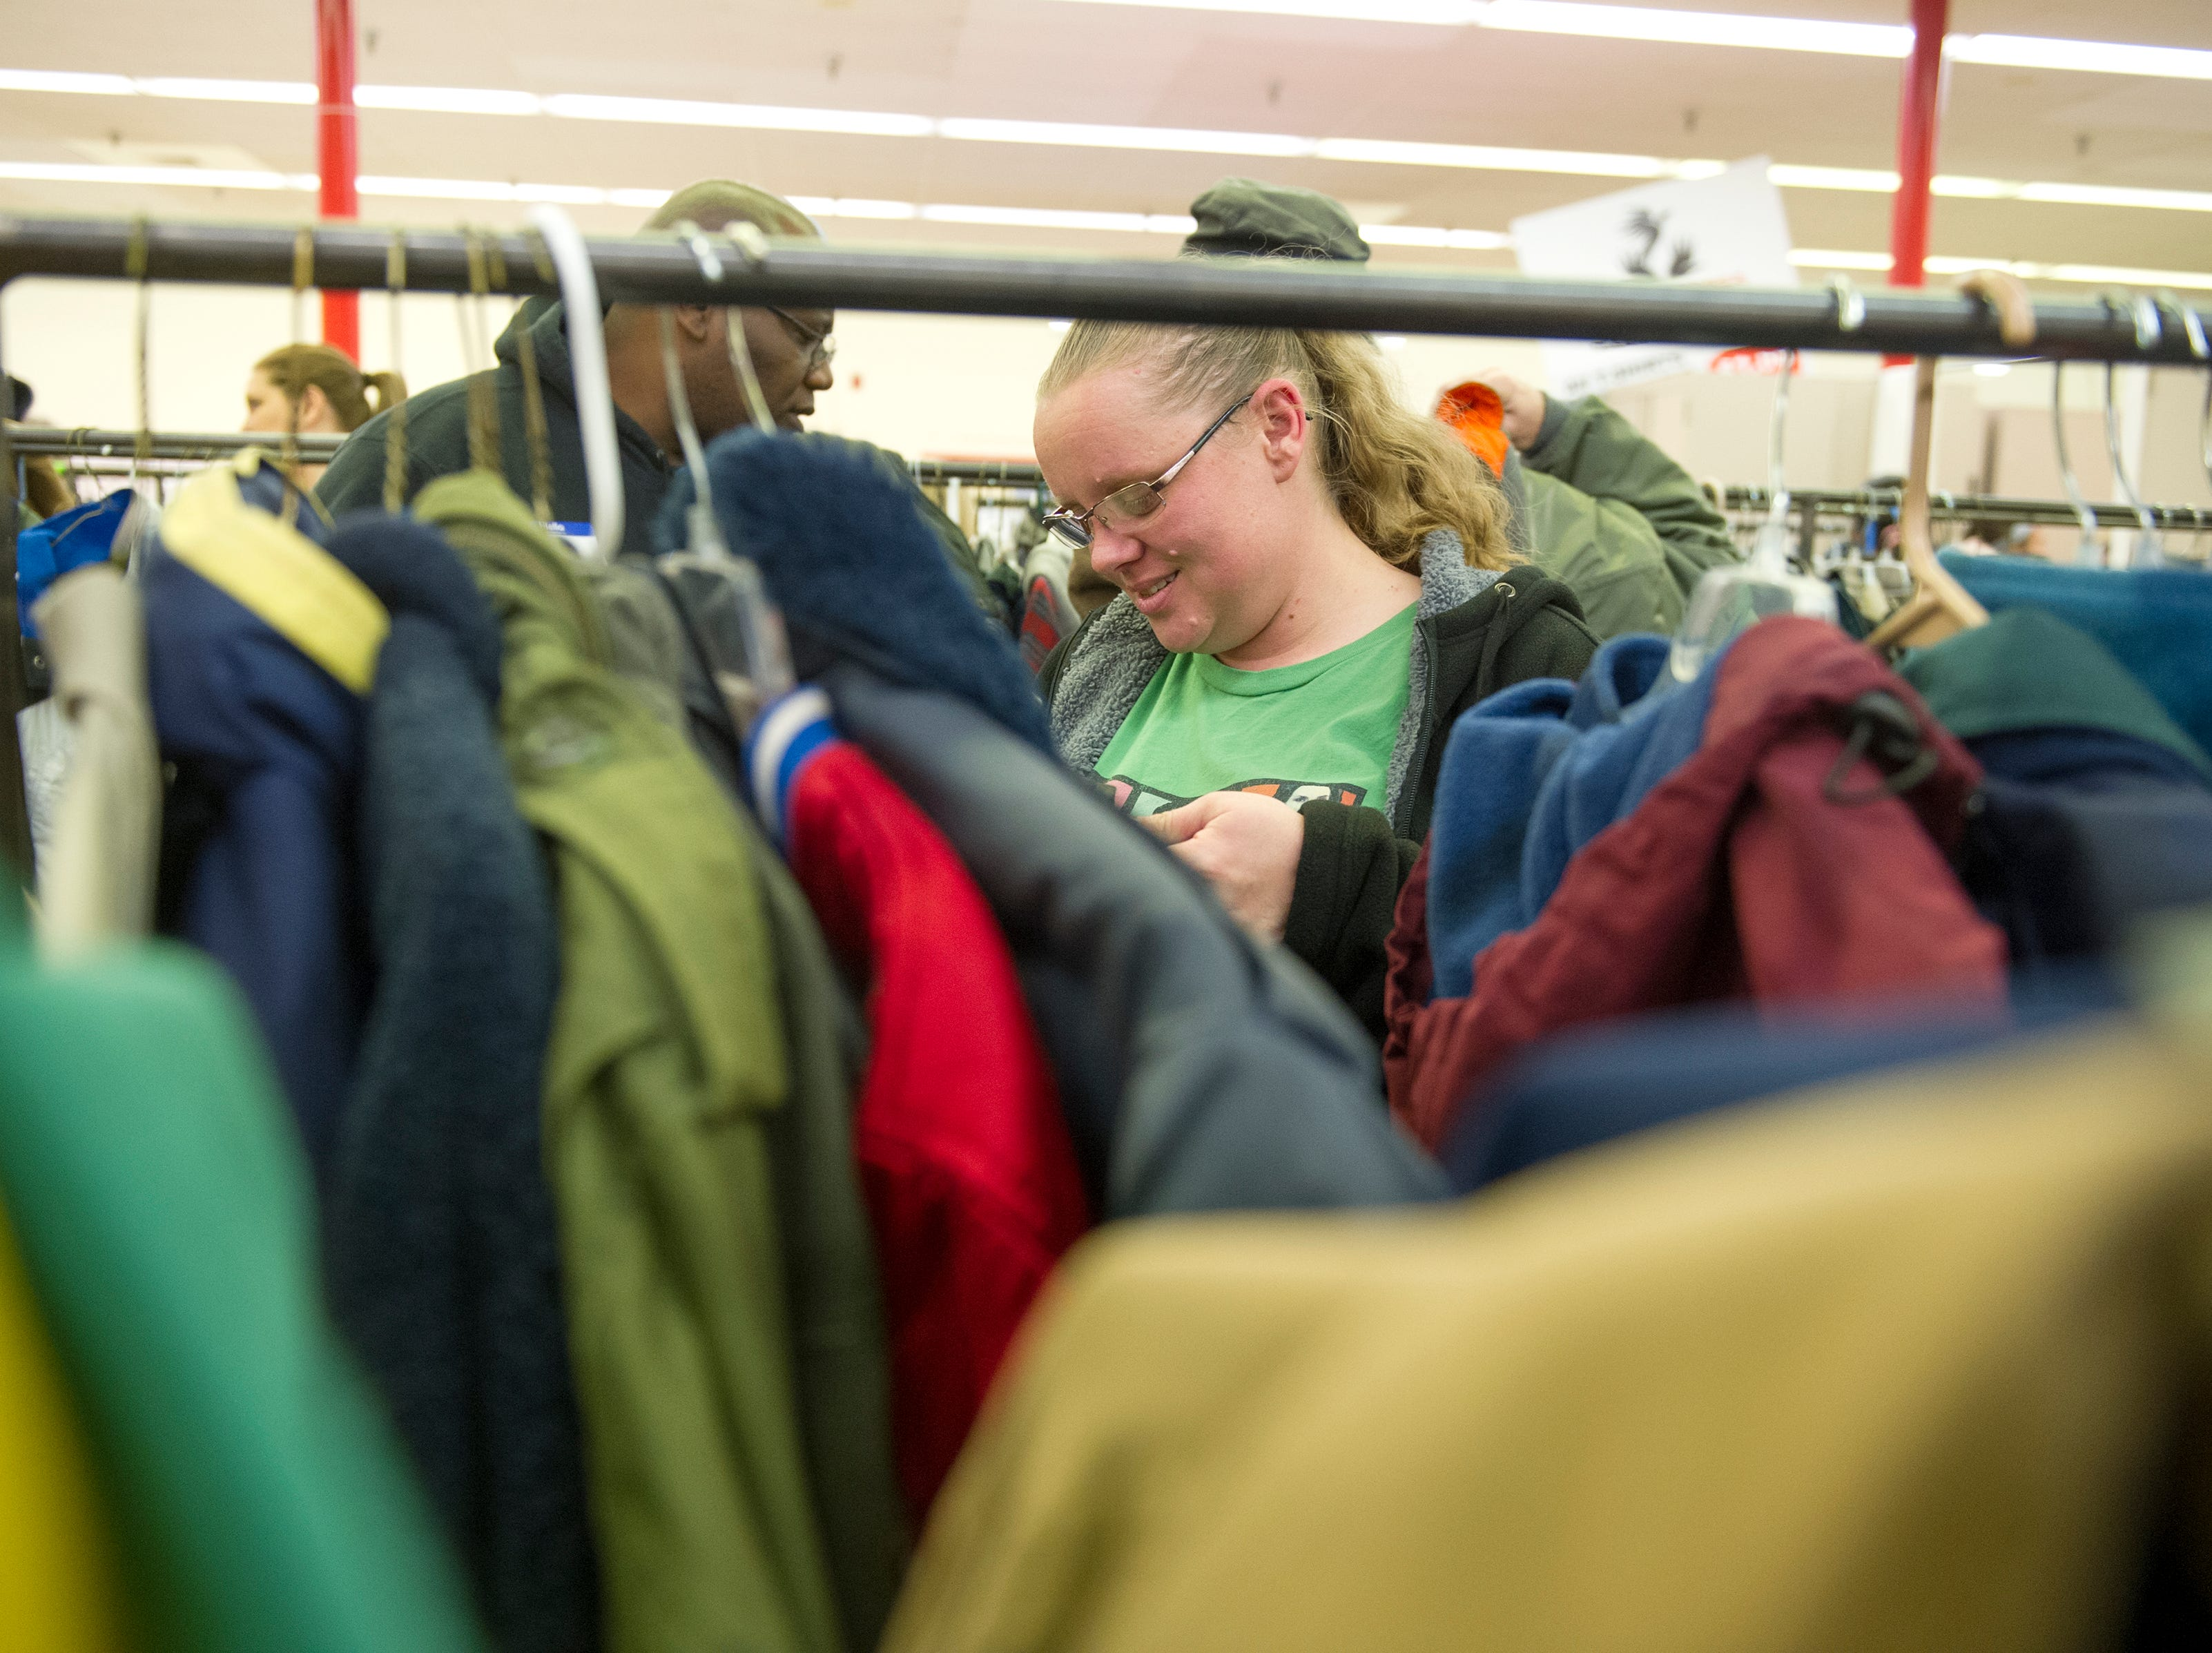 Linda Smith peruses the vast coat selection during KARM's 30th annual Coats for the Cold coat drive in Knoxville Saturday, Dec. 5, 2015.